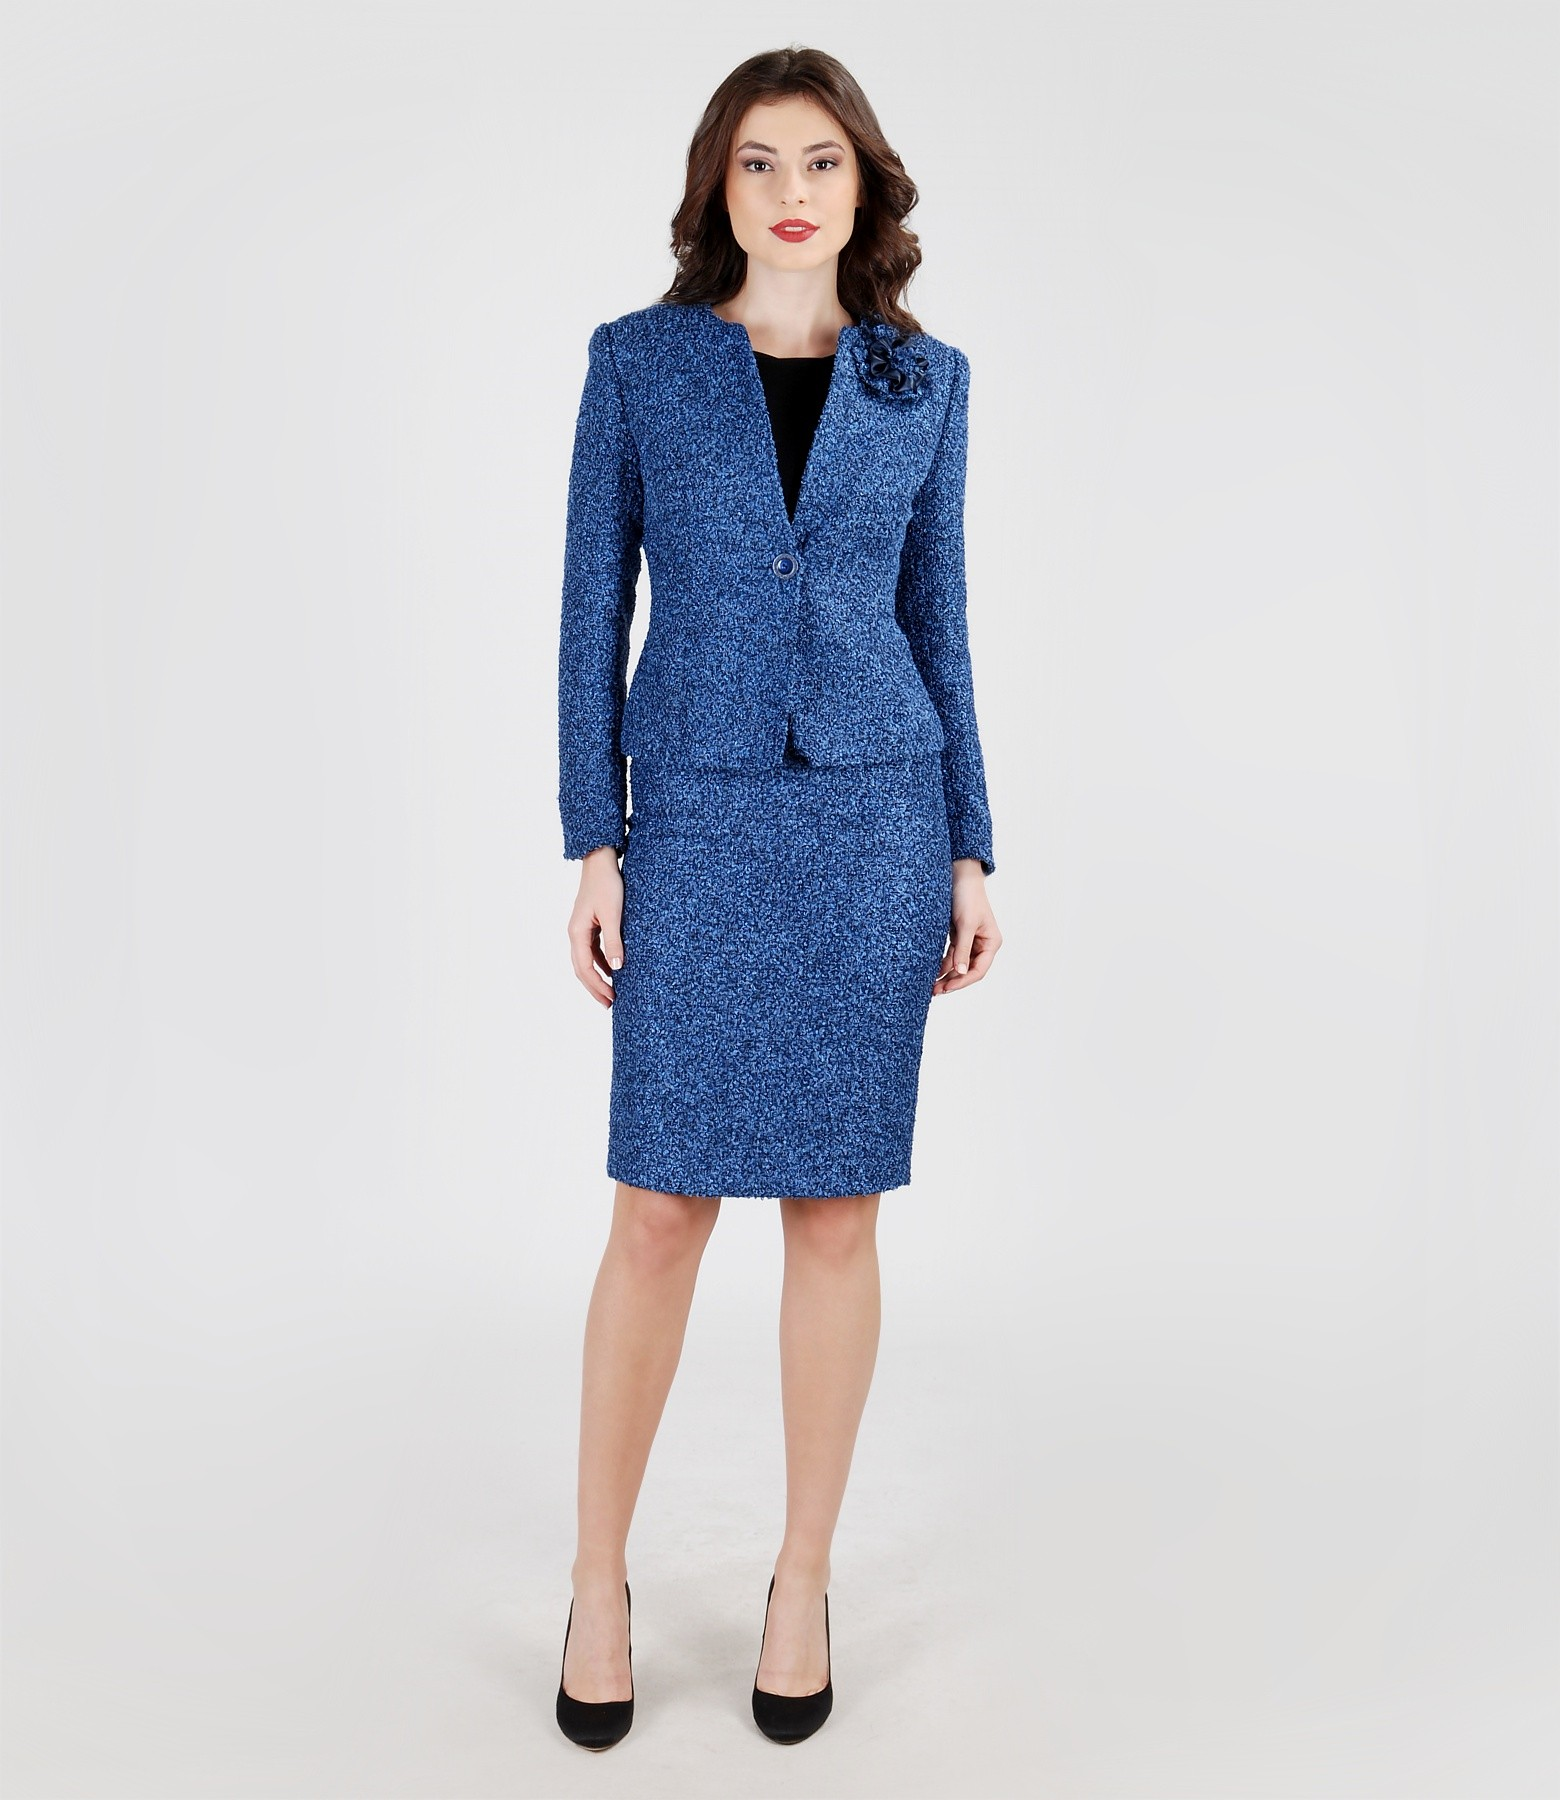 Blue office outfit from loops with cotton - YOKKO